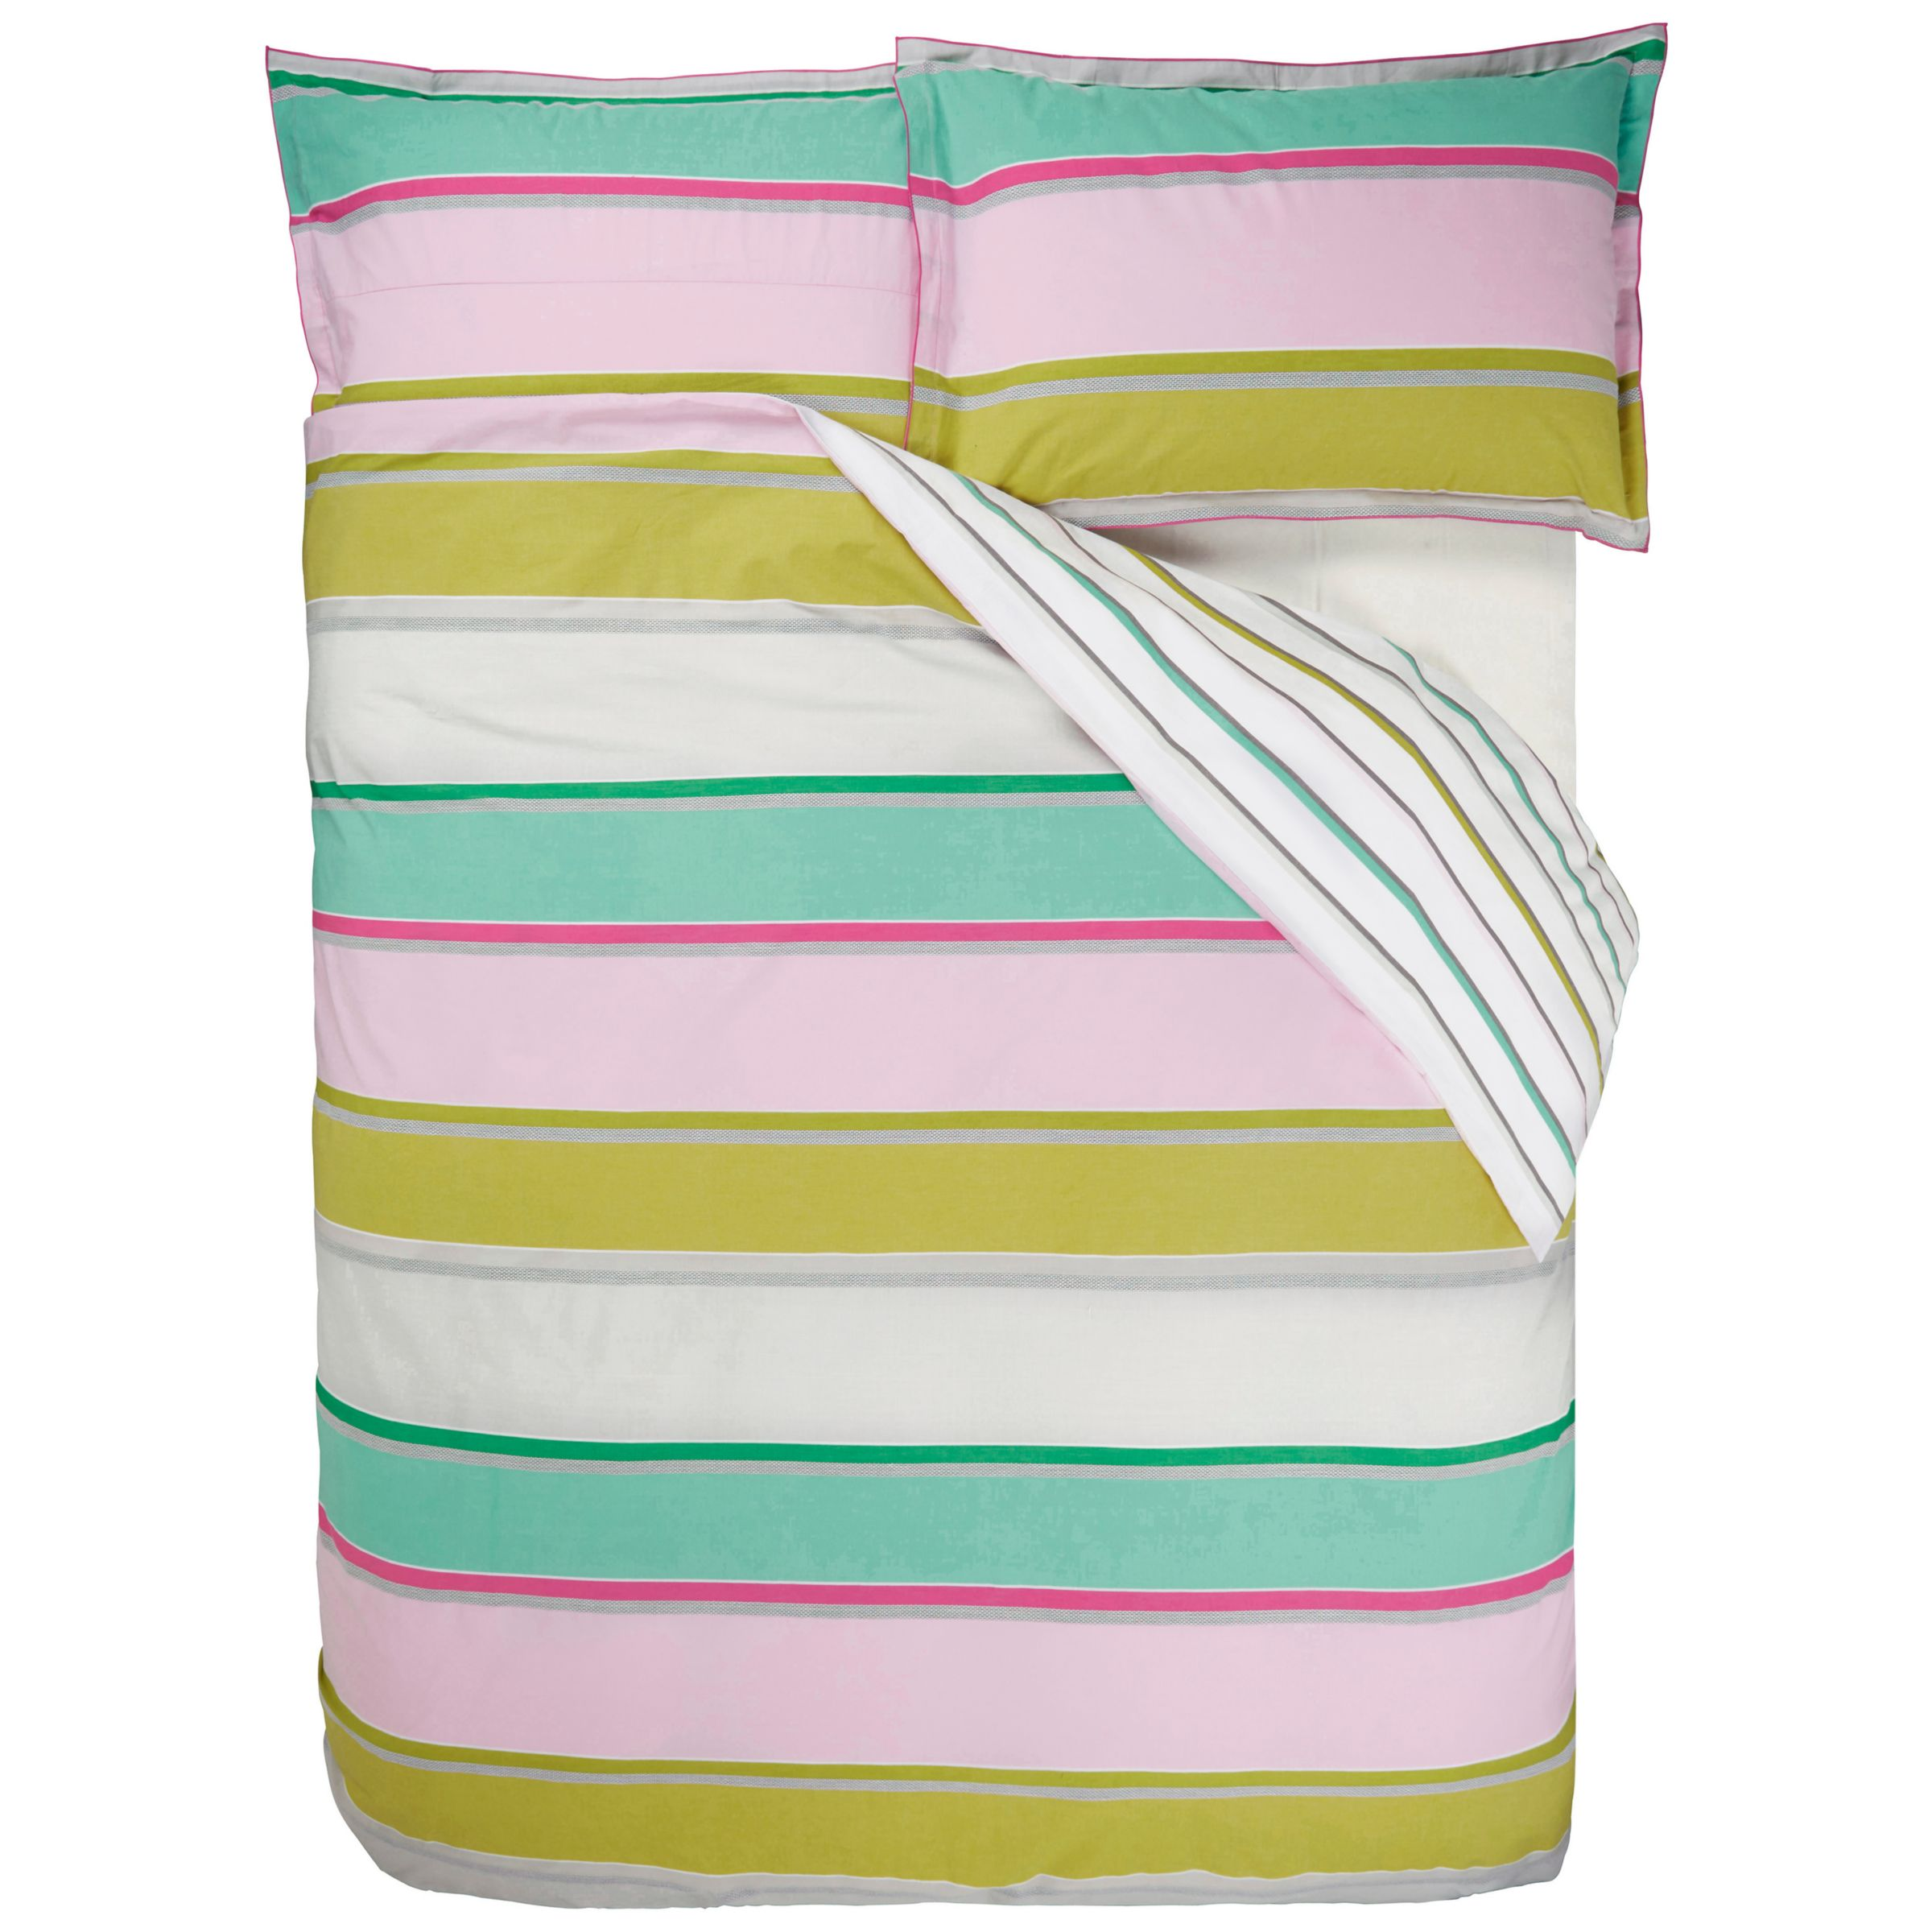 Designers guild dolls house bedding home design and style for Design of household linens